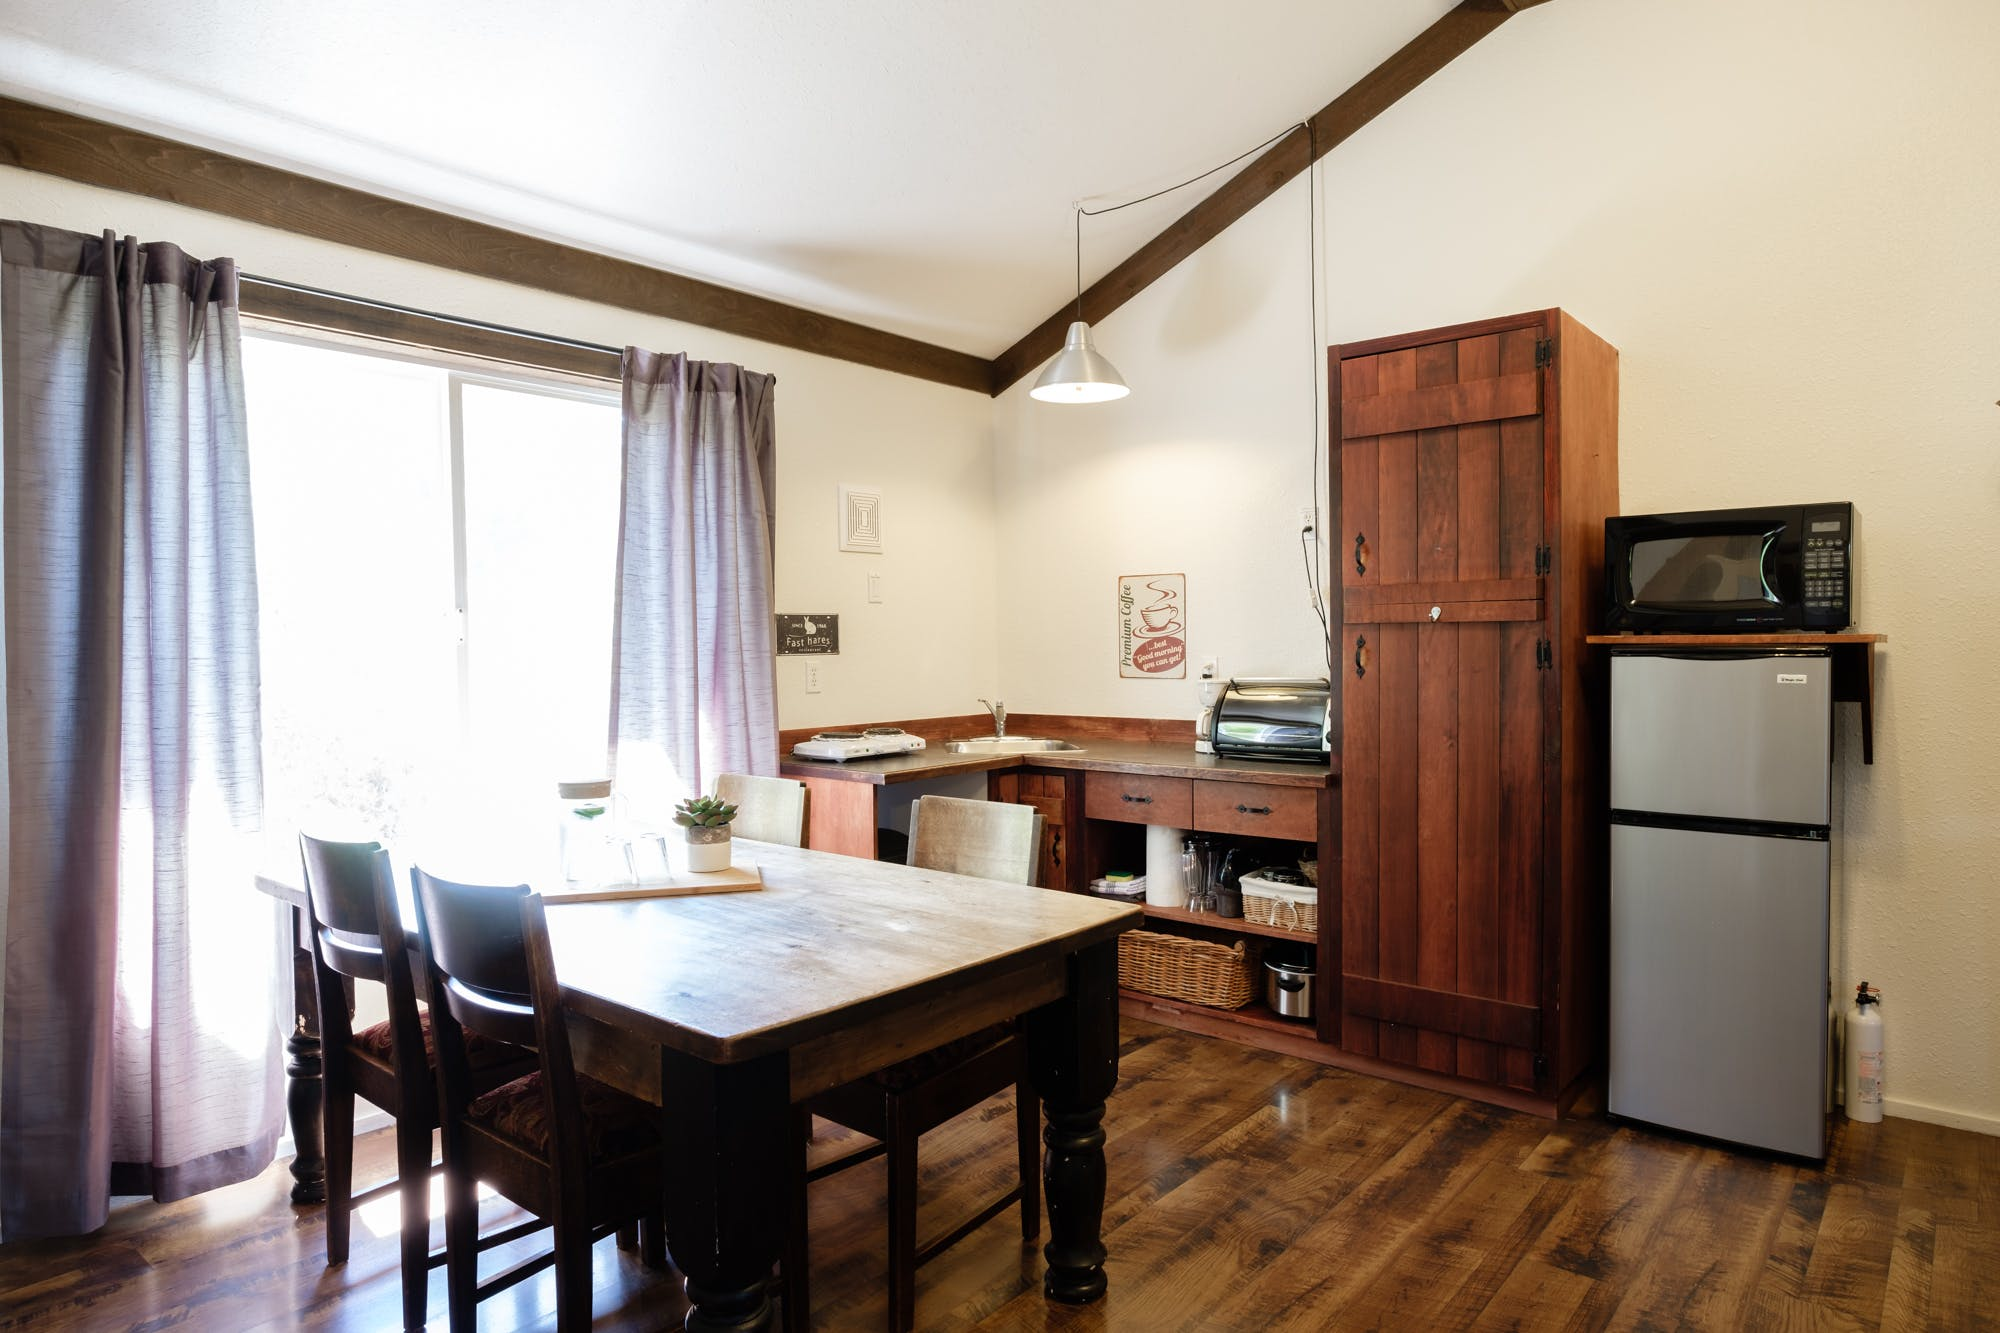 Kitchenette and dining area in Willow Cottage.